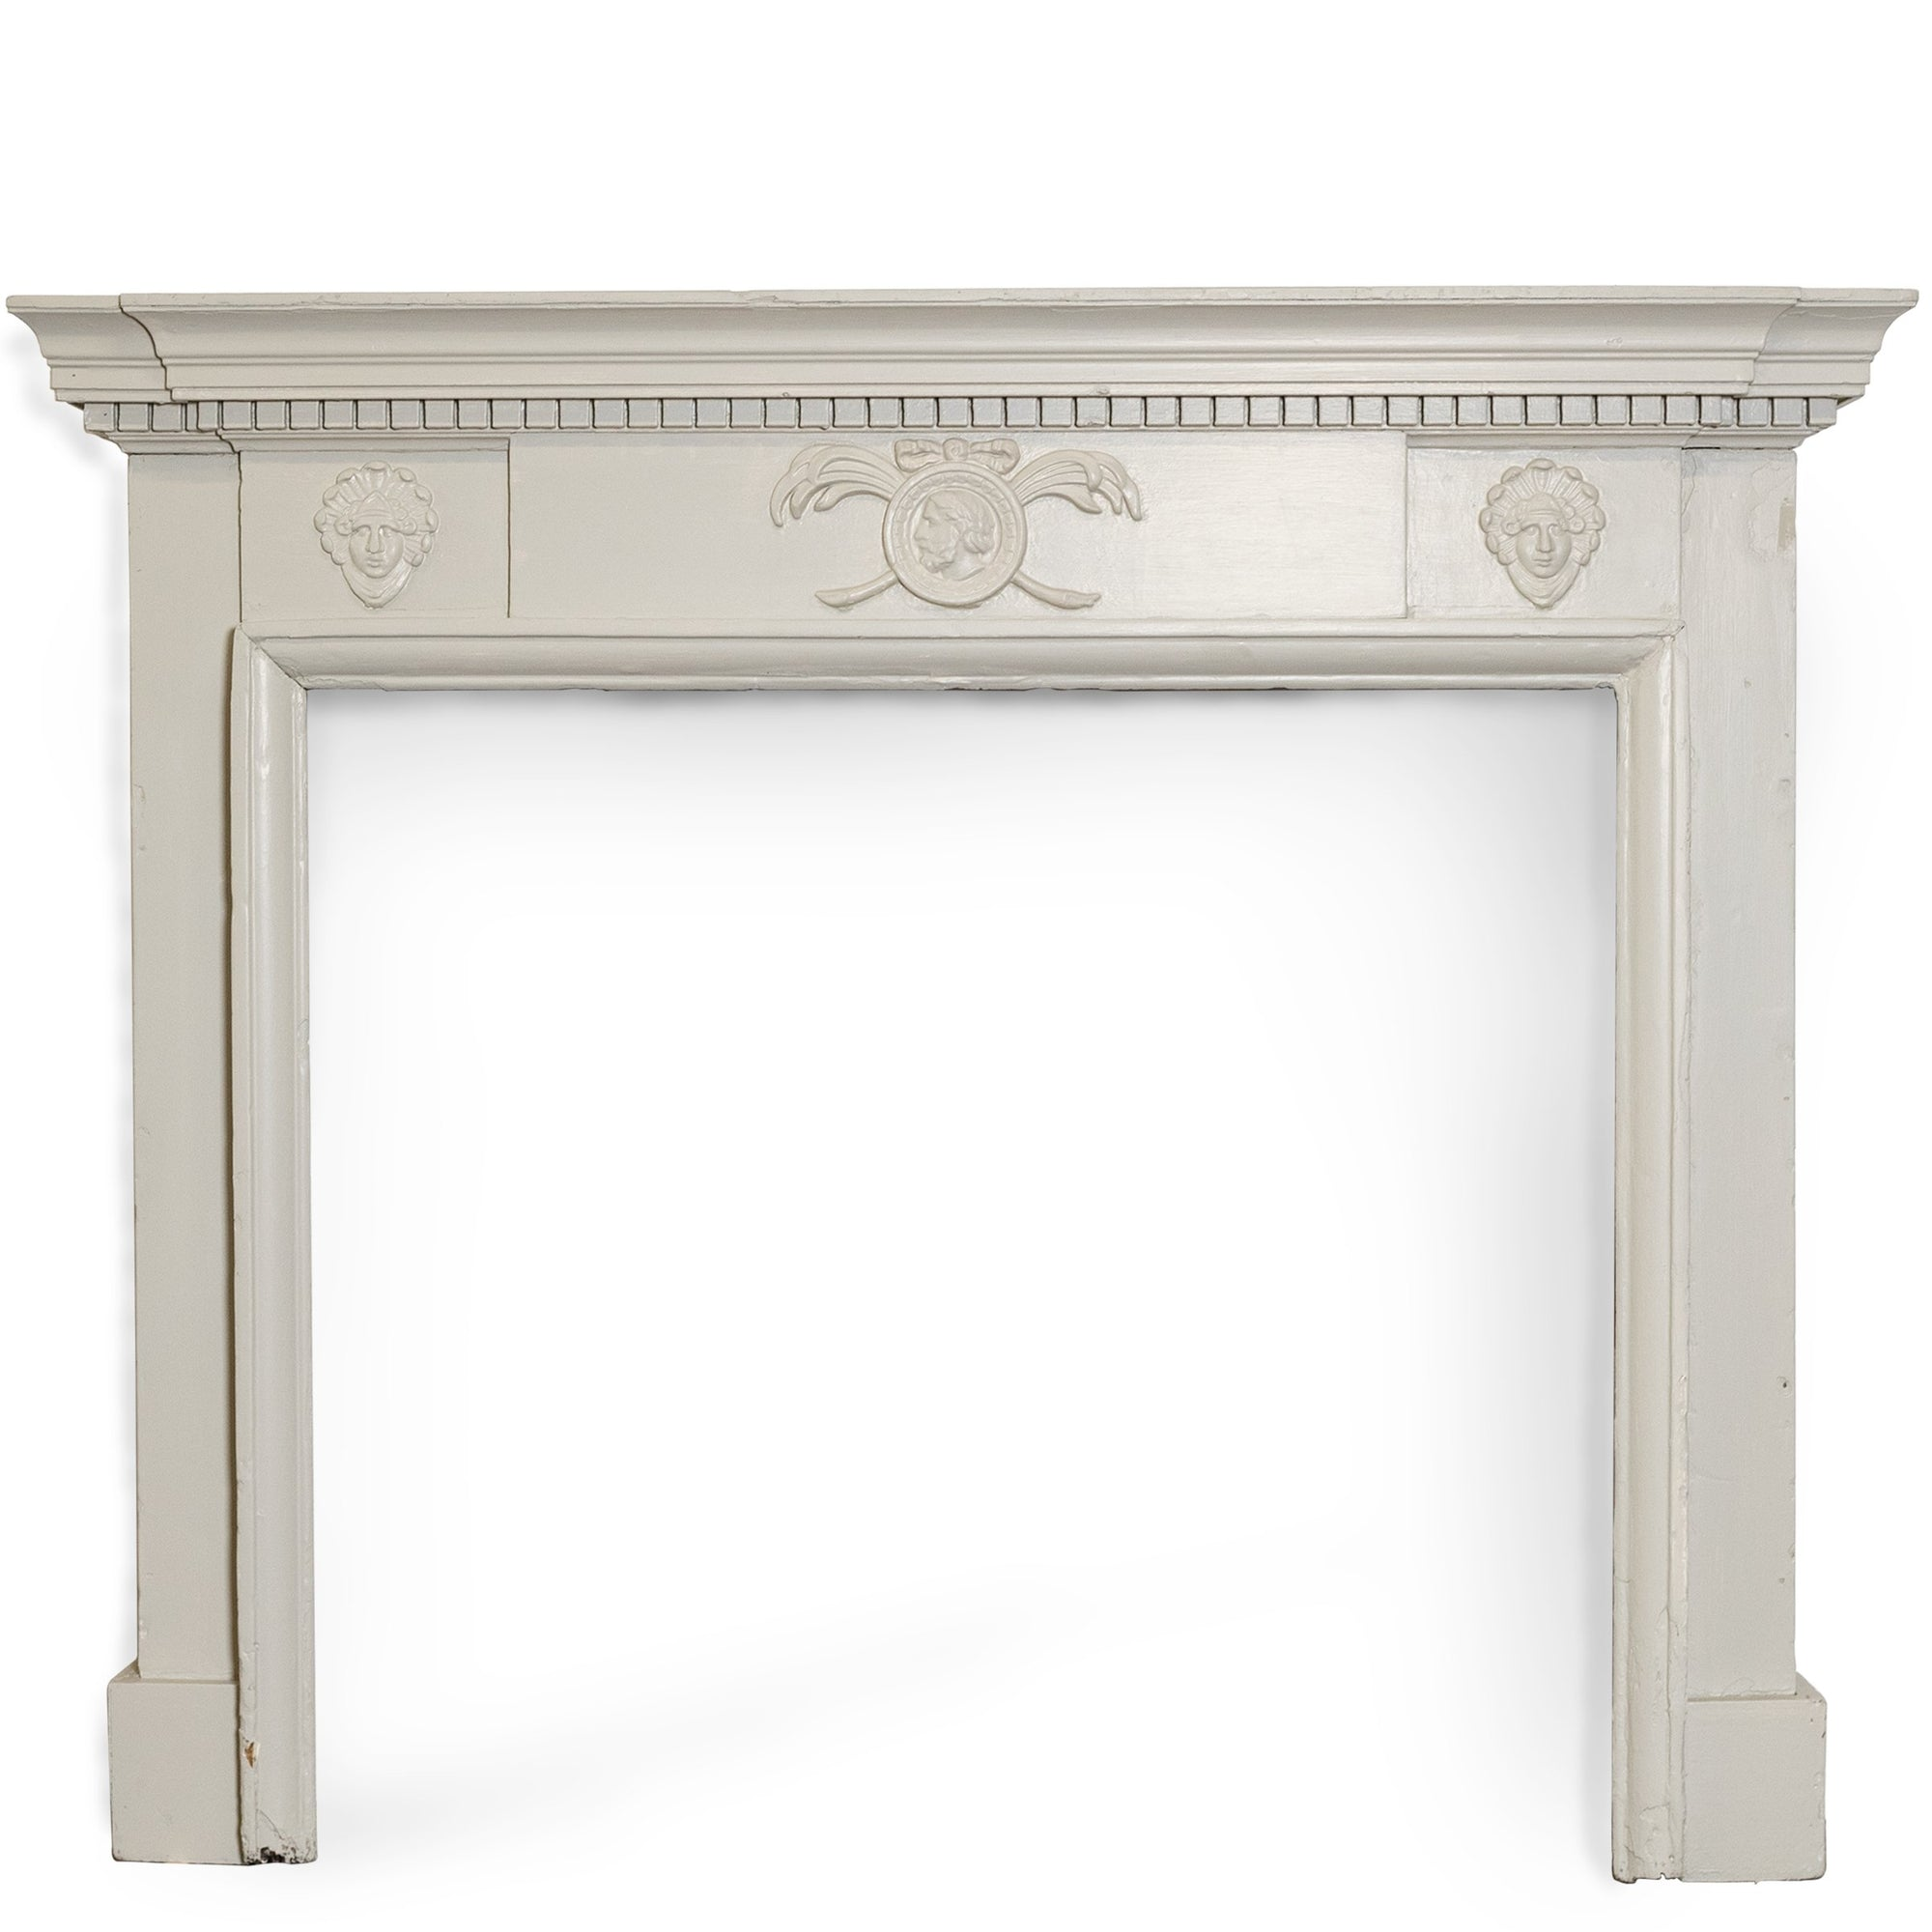 Antique Victorian Carved Wooden Fireplace Surround | The Architectural Forum?id=27960344051783